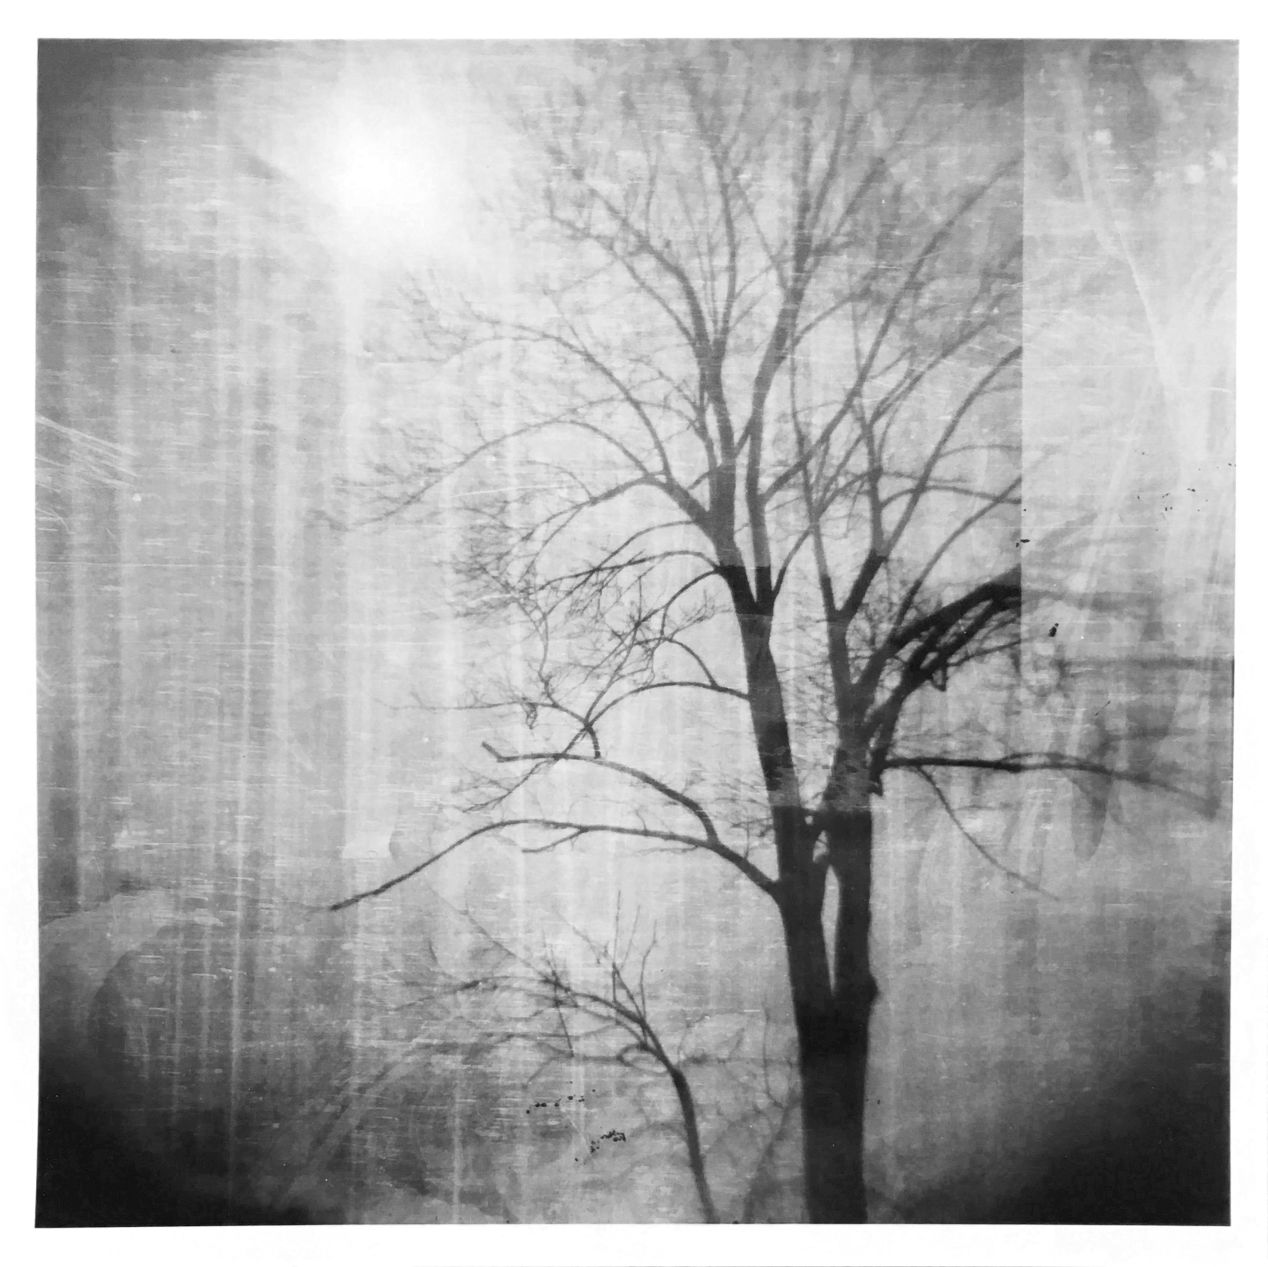 A photograph that was taken with medium format Lomography Holga 120 TLR camera and optically printed on paper.